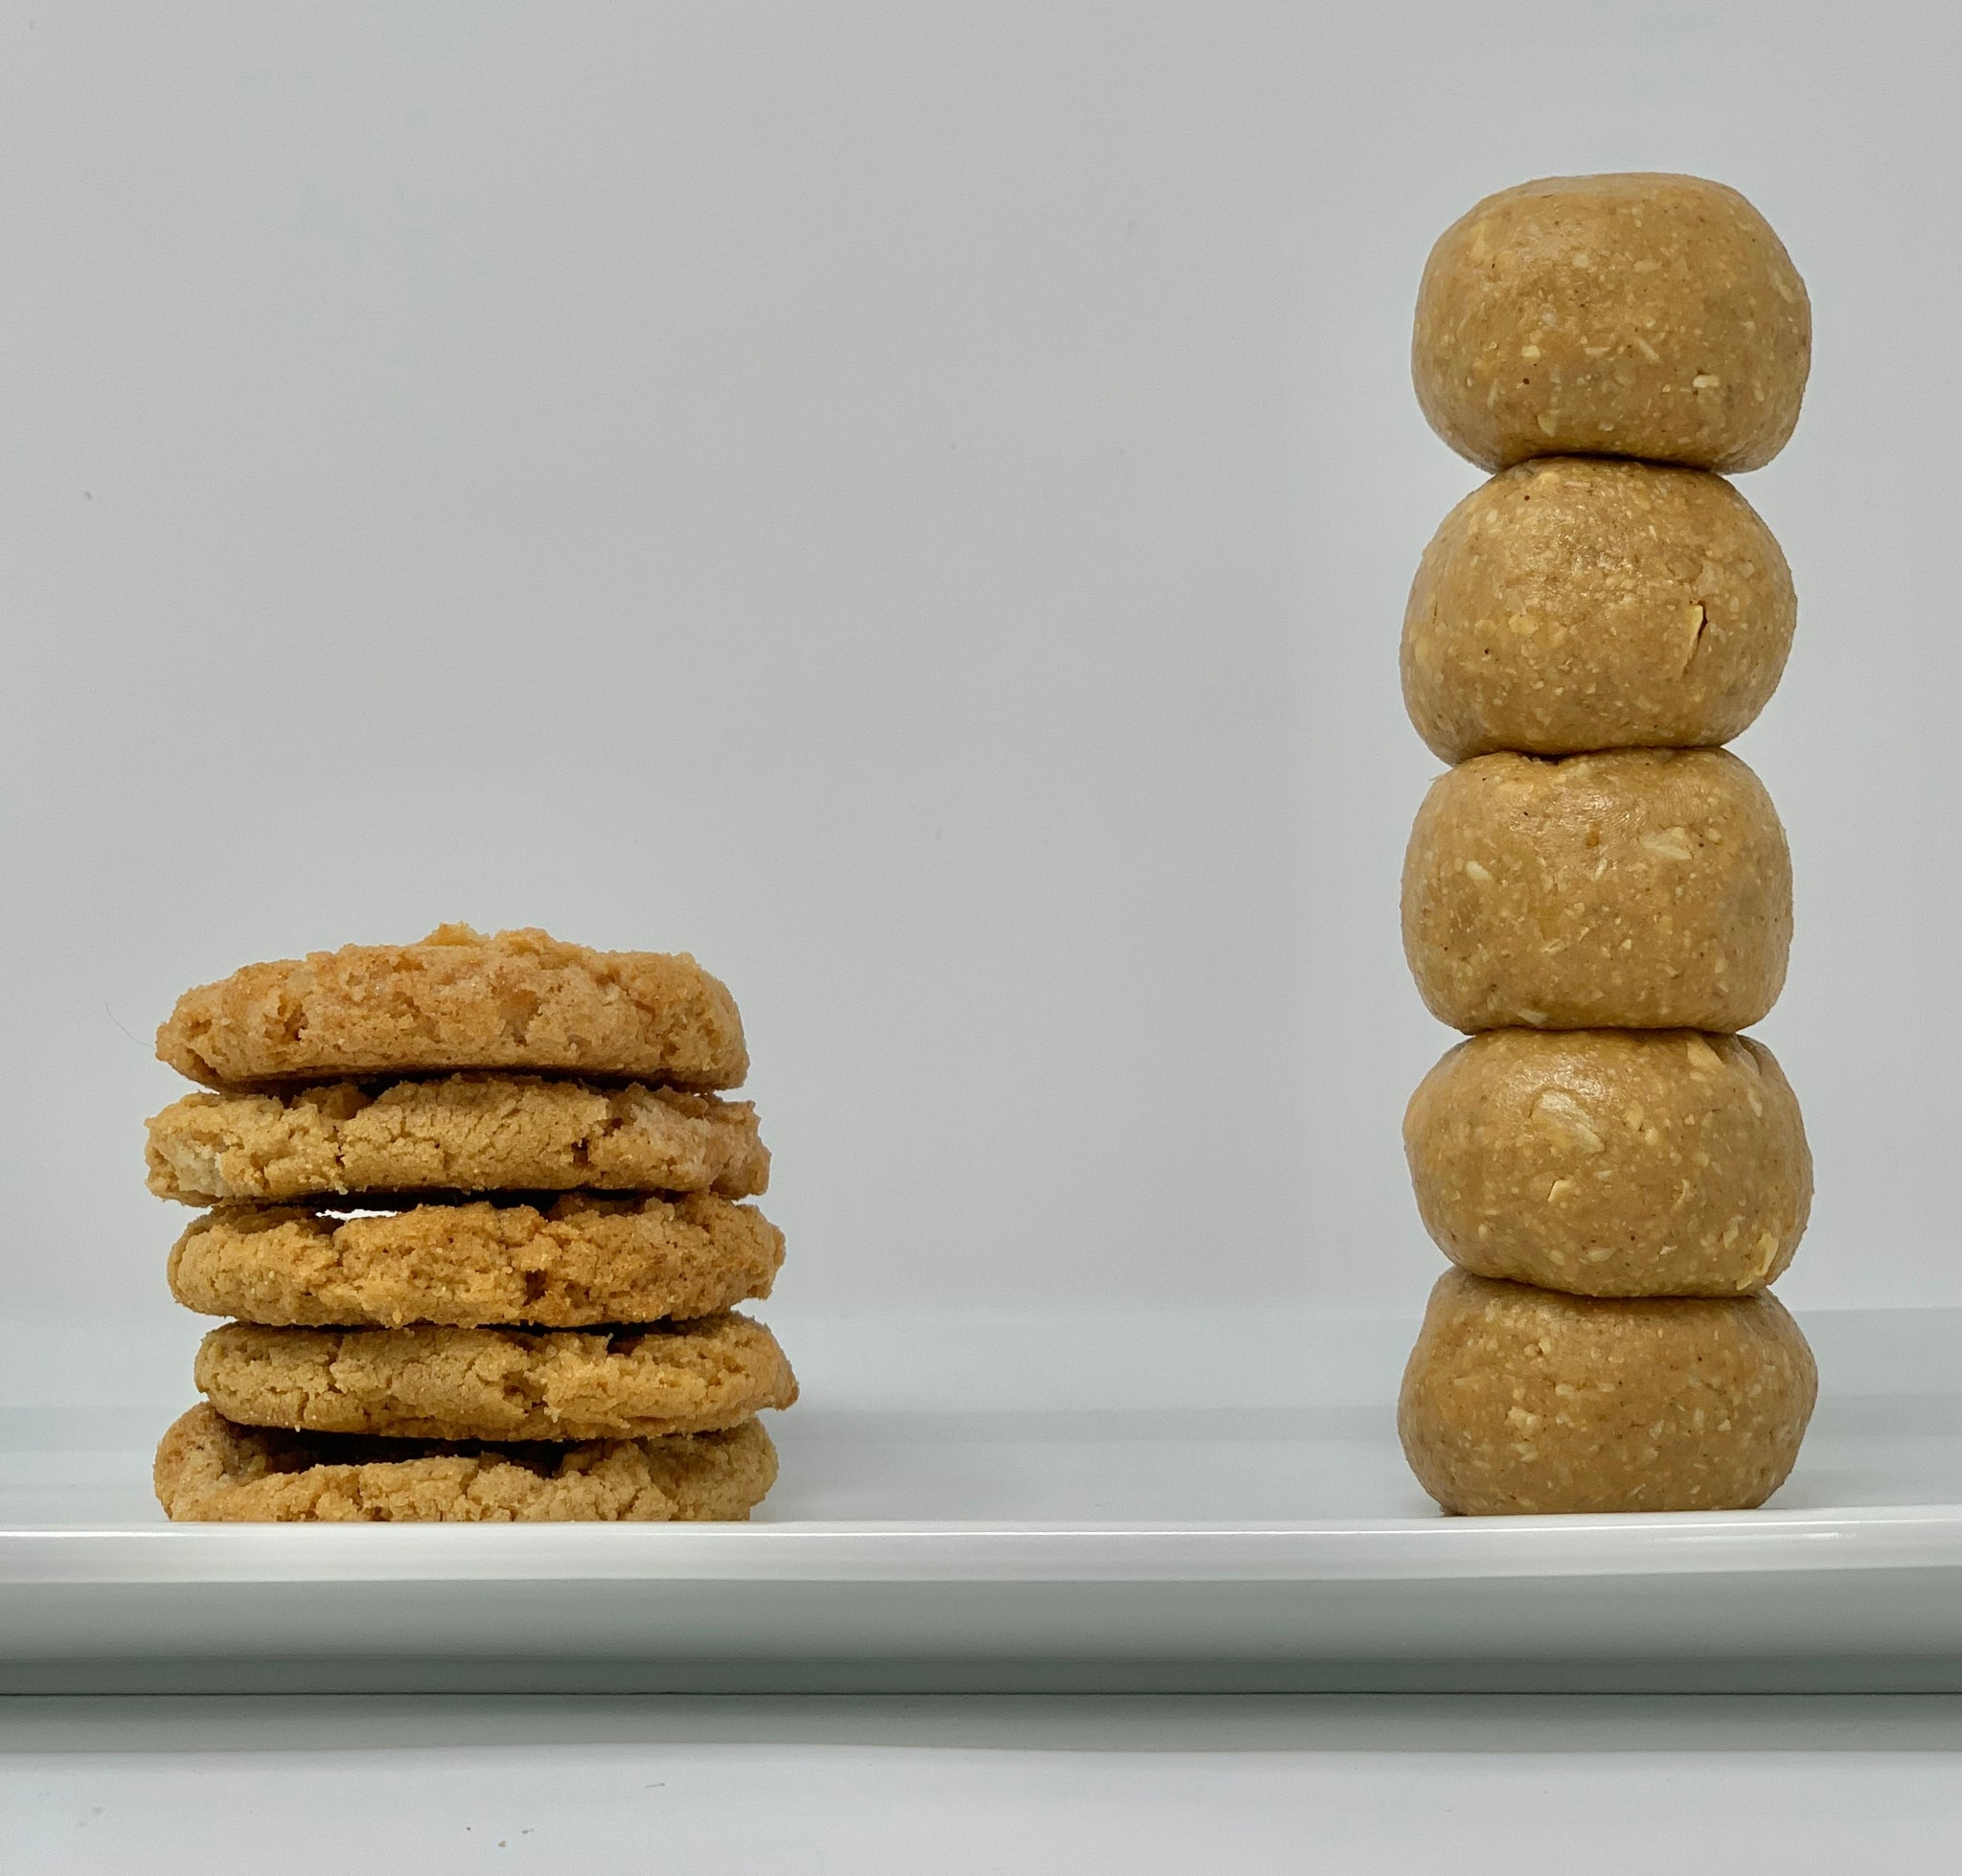 Peanut Butter Cookie Oatball vs. Classic Peanut Butter Cookie